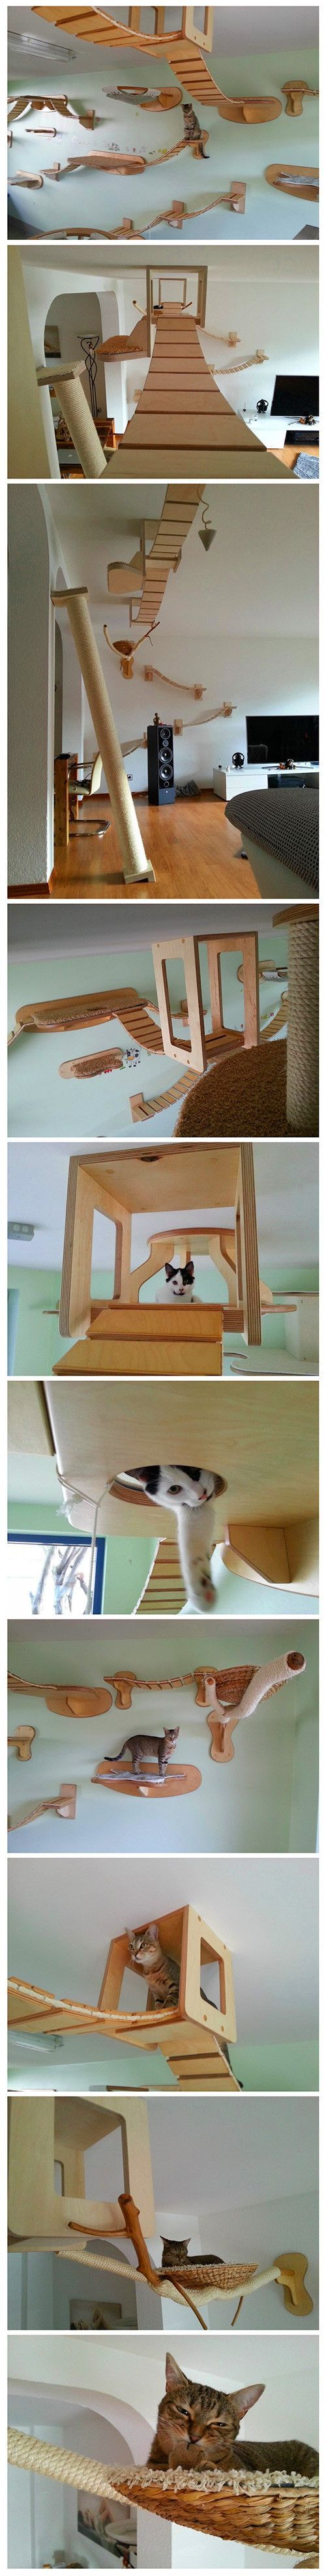 Overhead playgrounds for cats.